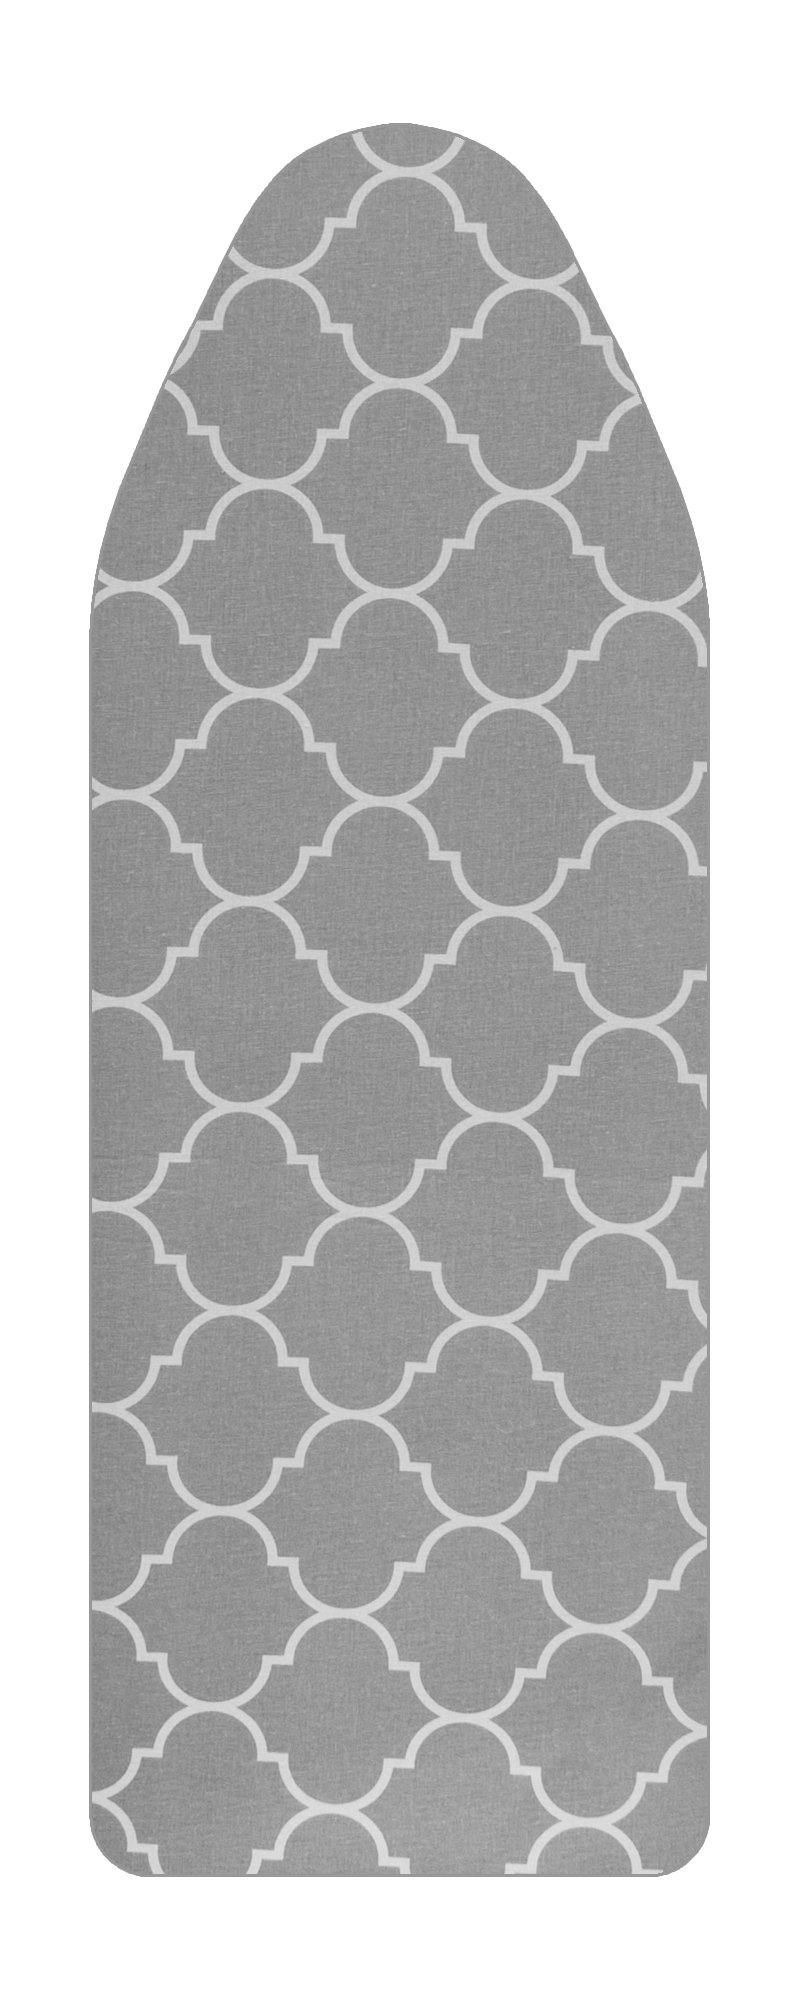 VieveMar Premium Ironing Board Cover, Thick padding with Cotton, Foam and Felt Pad, EASY FIT with DrawString, Heat Reflective. Fits Boards 15'' x 48'' (Moroccan clover)